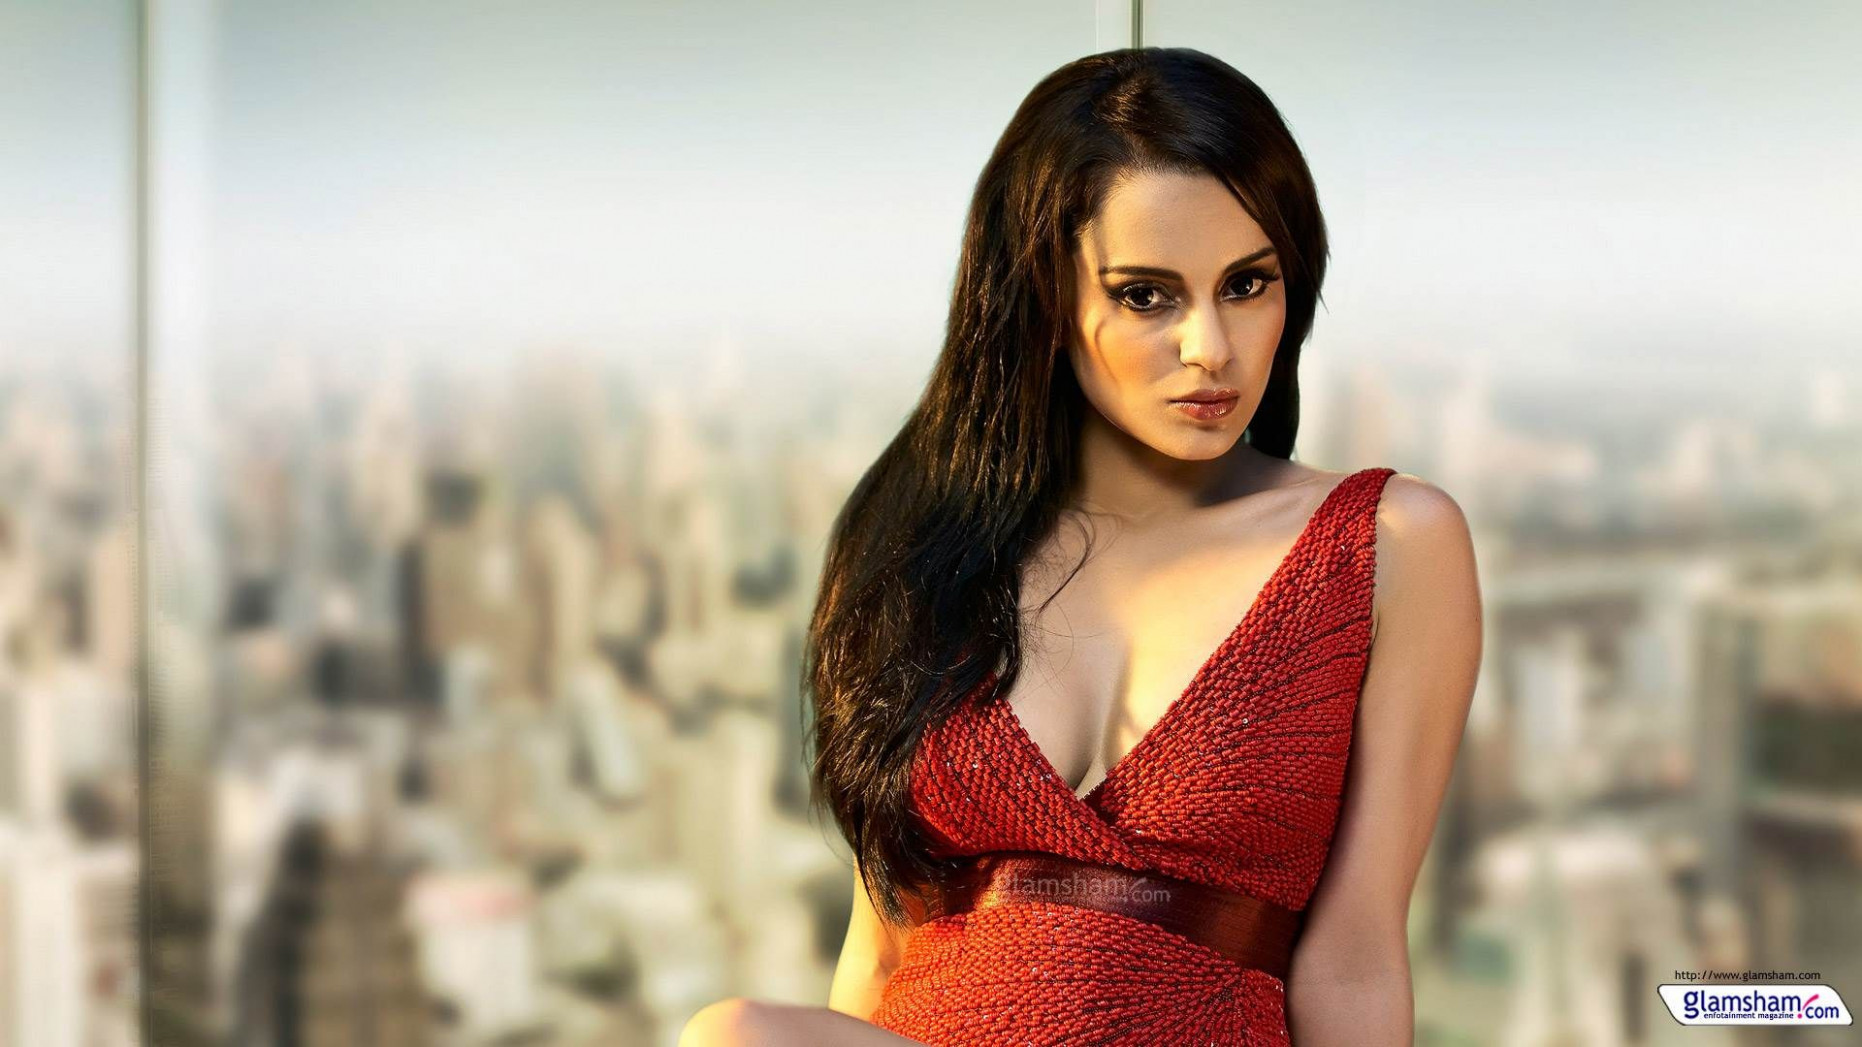 Bollywood Actress HD wallpapers Free Download 1024×768 ...